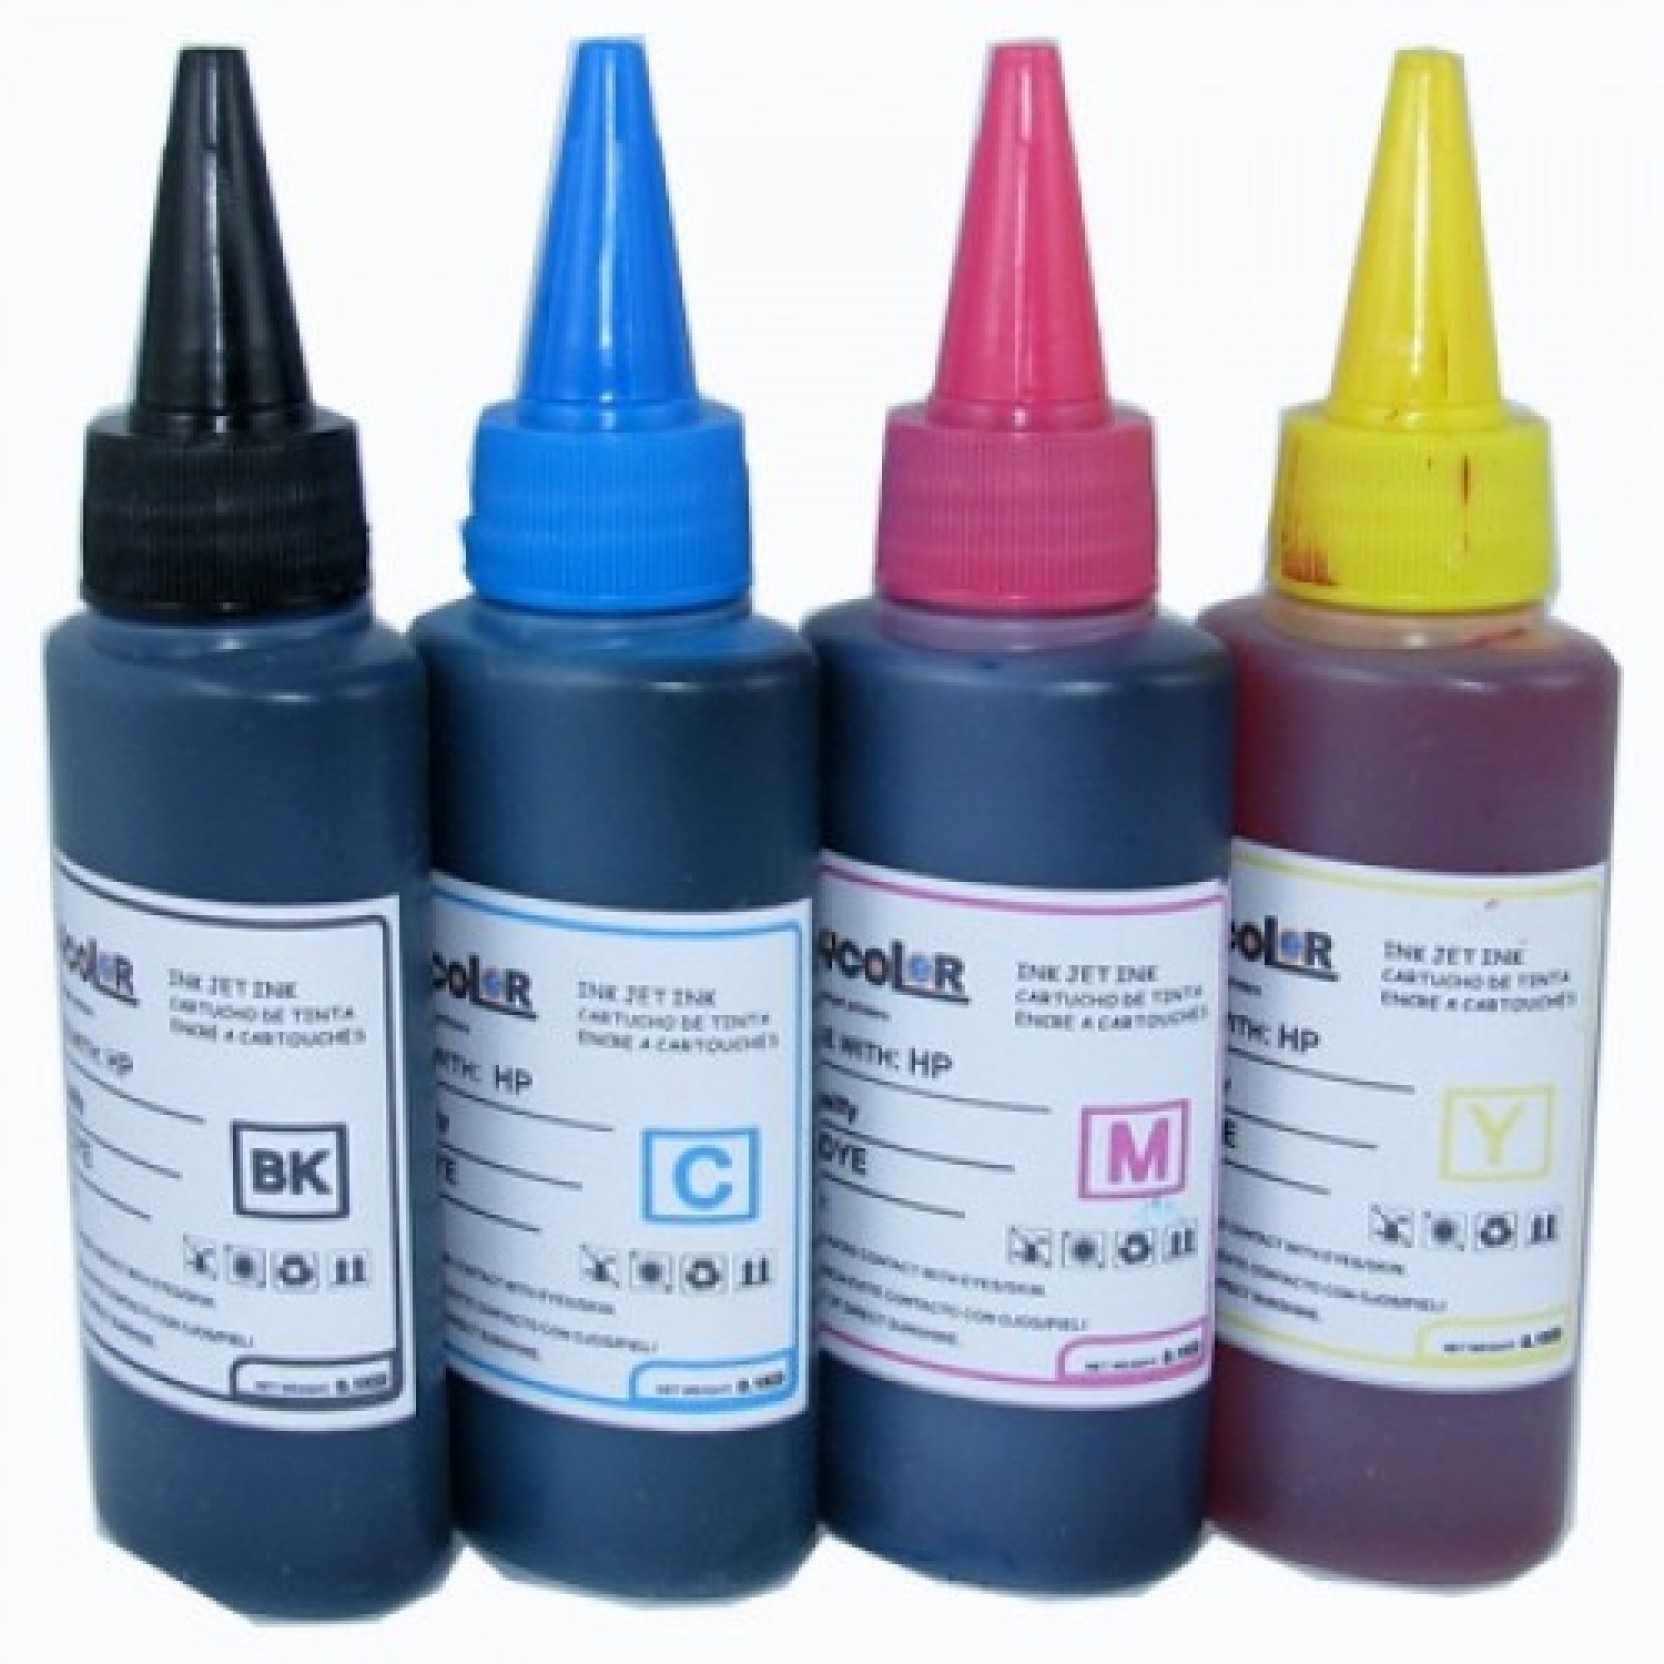 Blue Streak Refill Ink For Use In Brother Dcp J125 Printer Black Tinta Lc 583 Original Compare